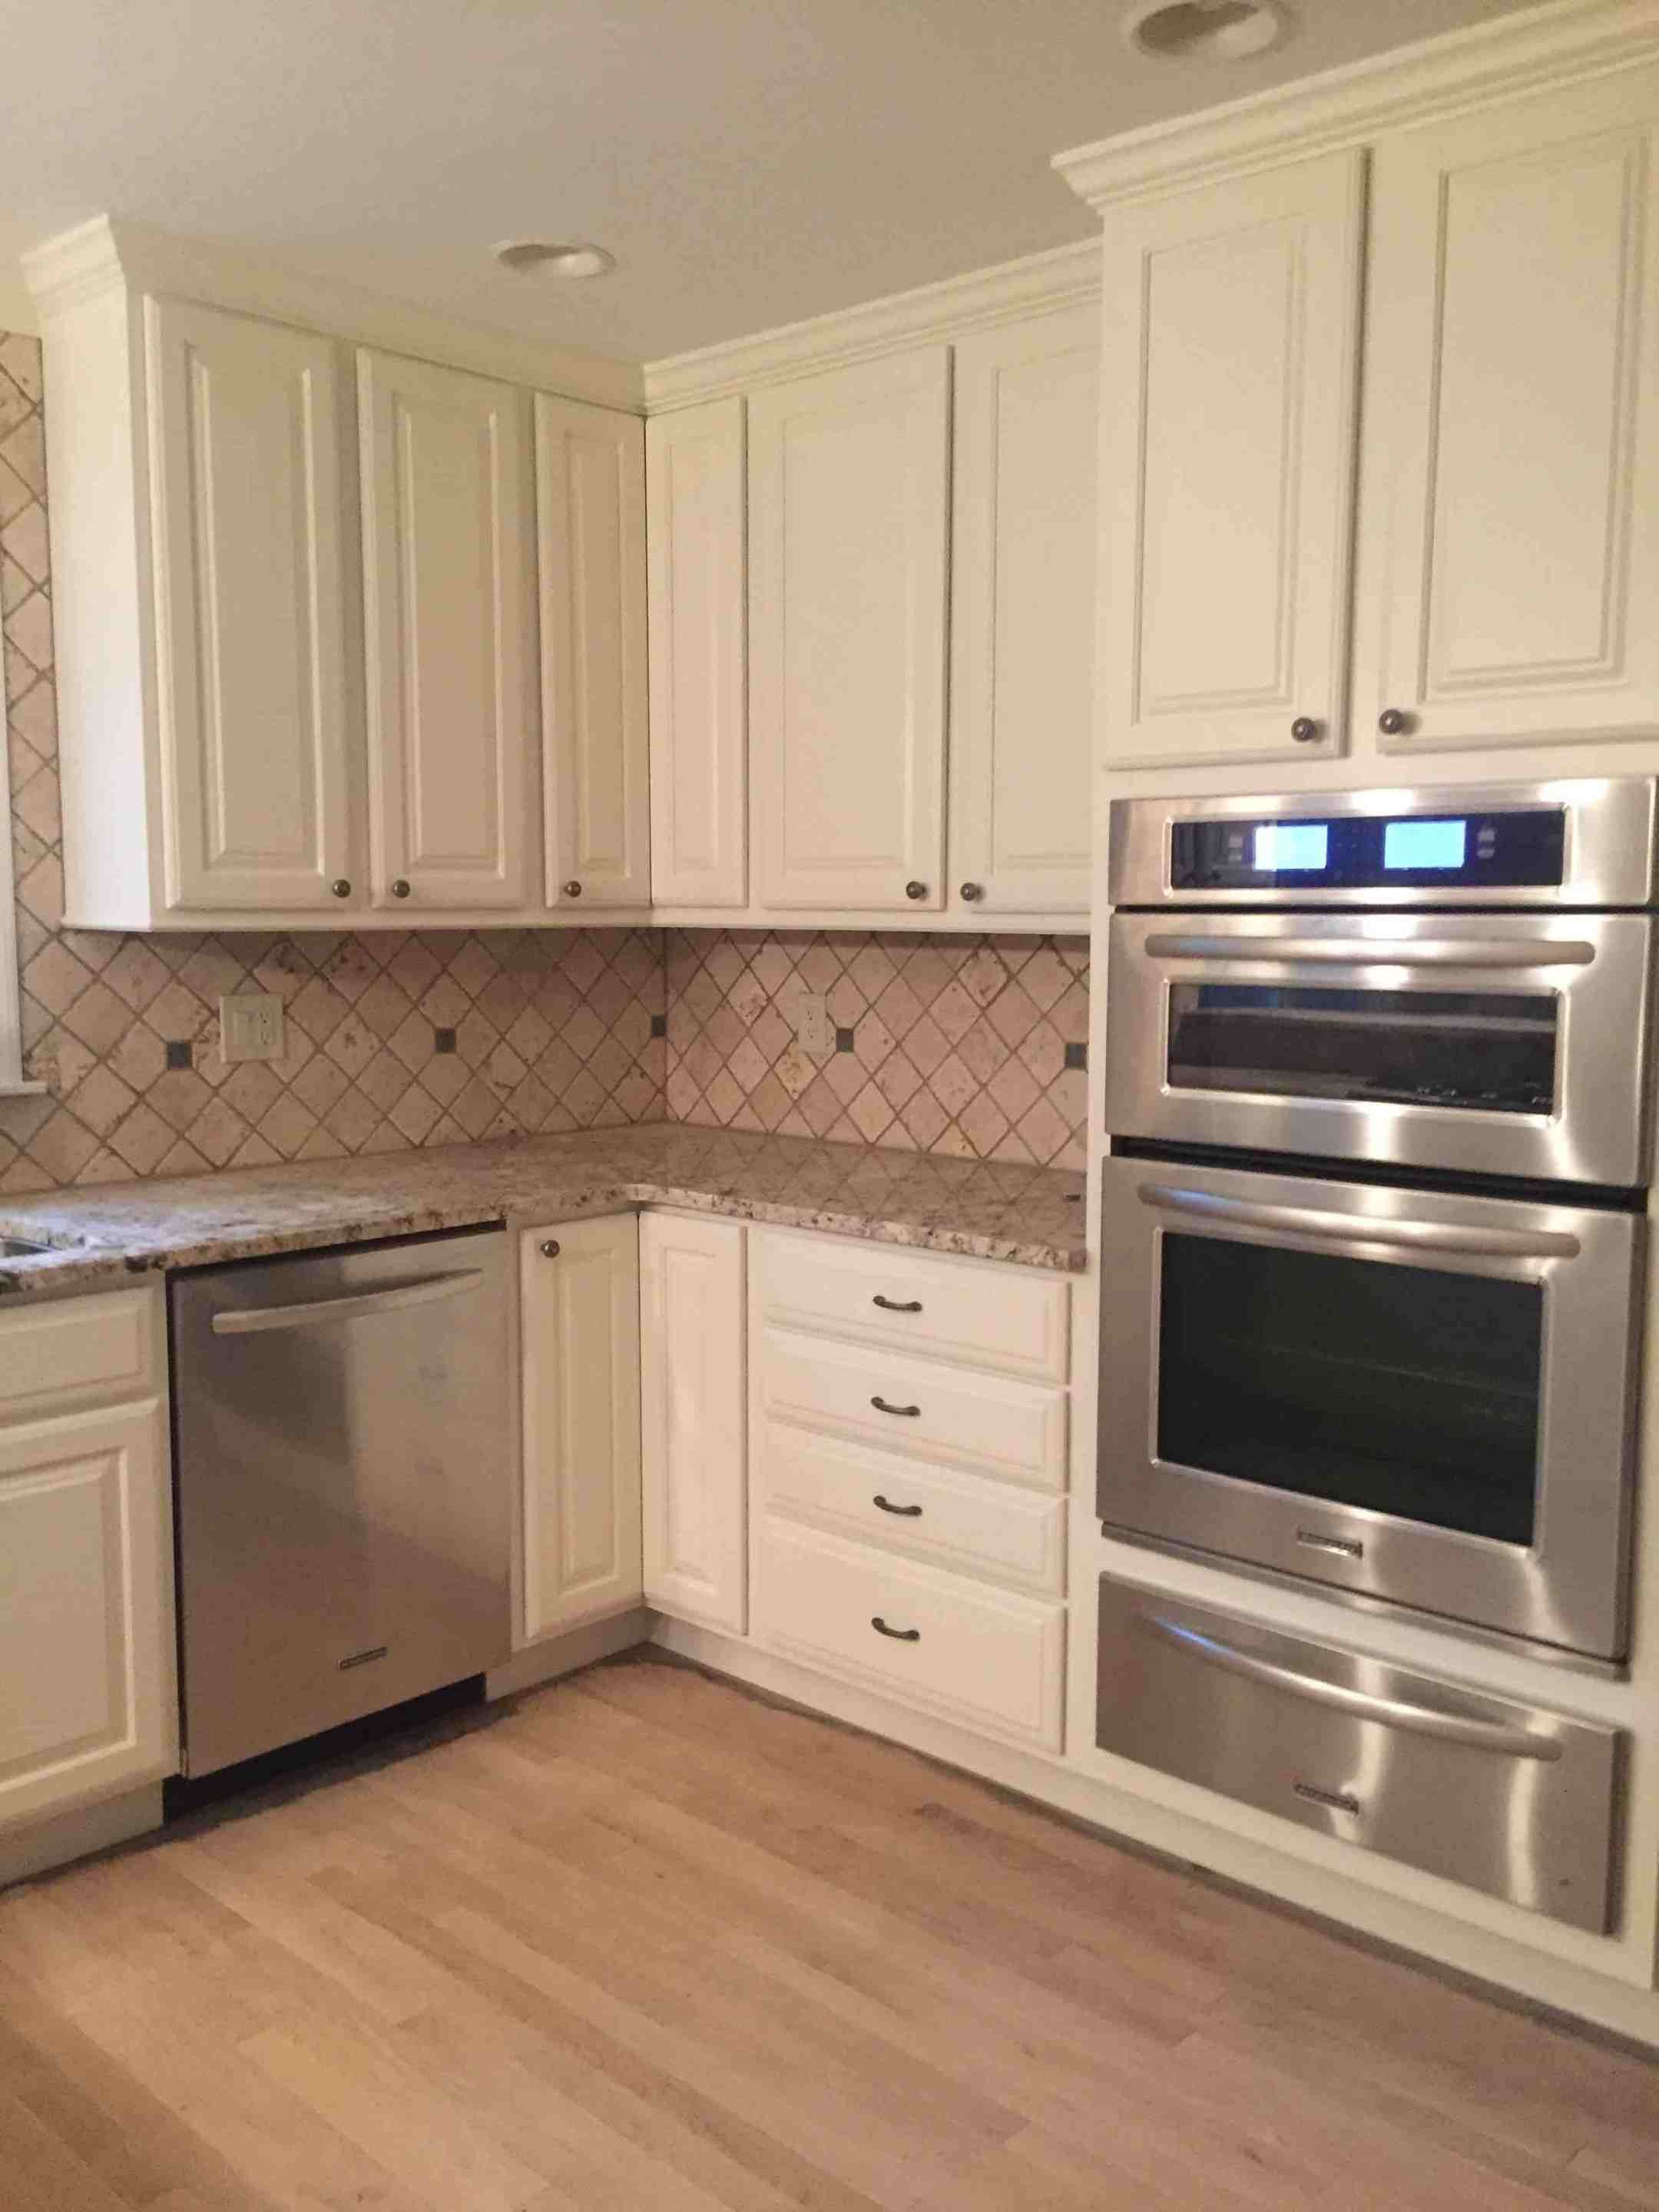 My Favorite Sherwin Williams Paint Colors Painted Kitchen Cabinets Colors Beige Kitchen Beige Kitchen Cabinets